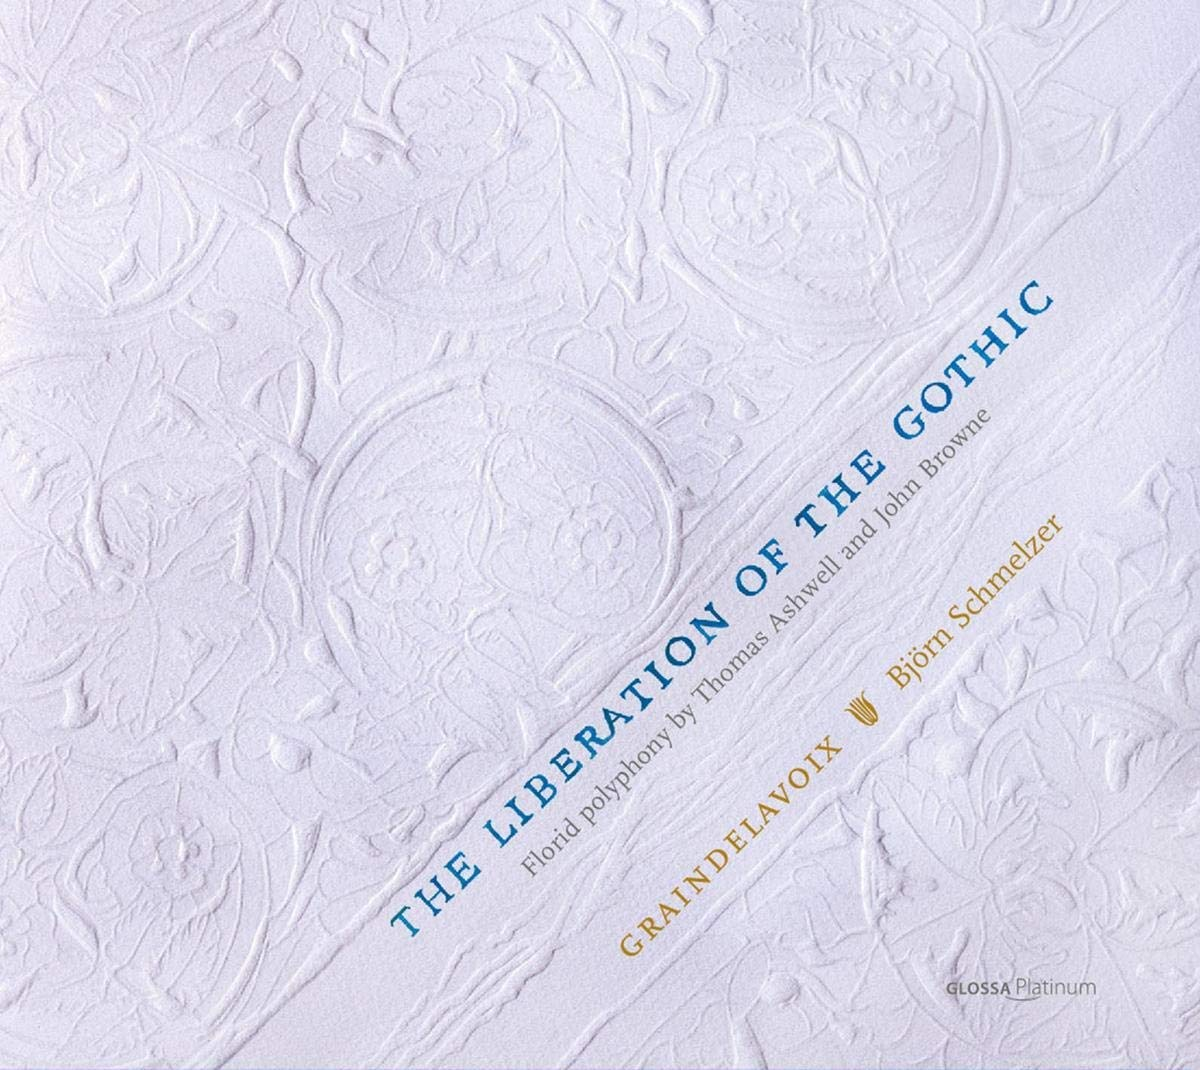 "NOUVEL ALBUM GRAINDELAVOIX - ""The Liberation of the Gothic"" Florid polyphony by Thomas Ashwell and John Browne"